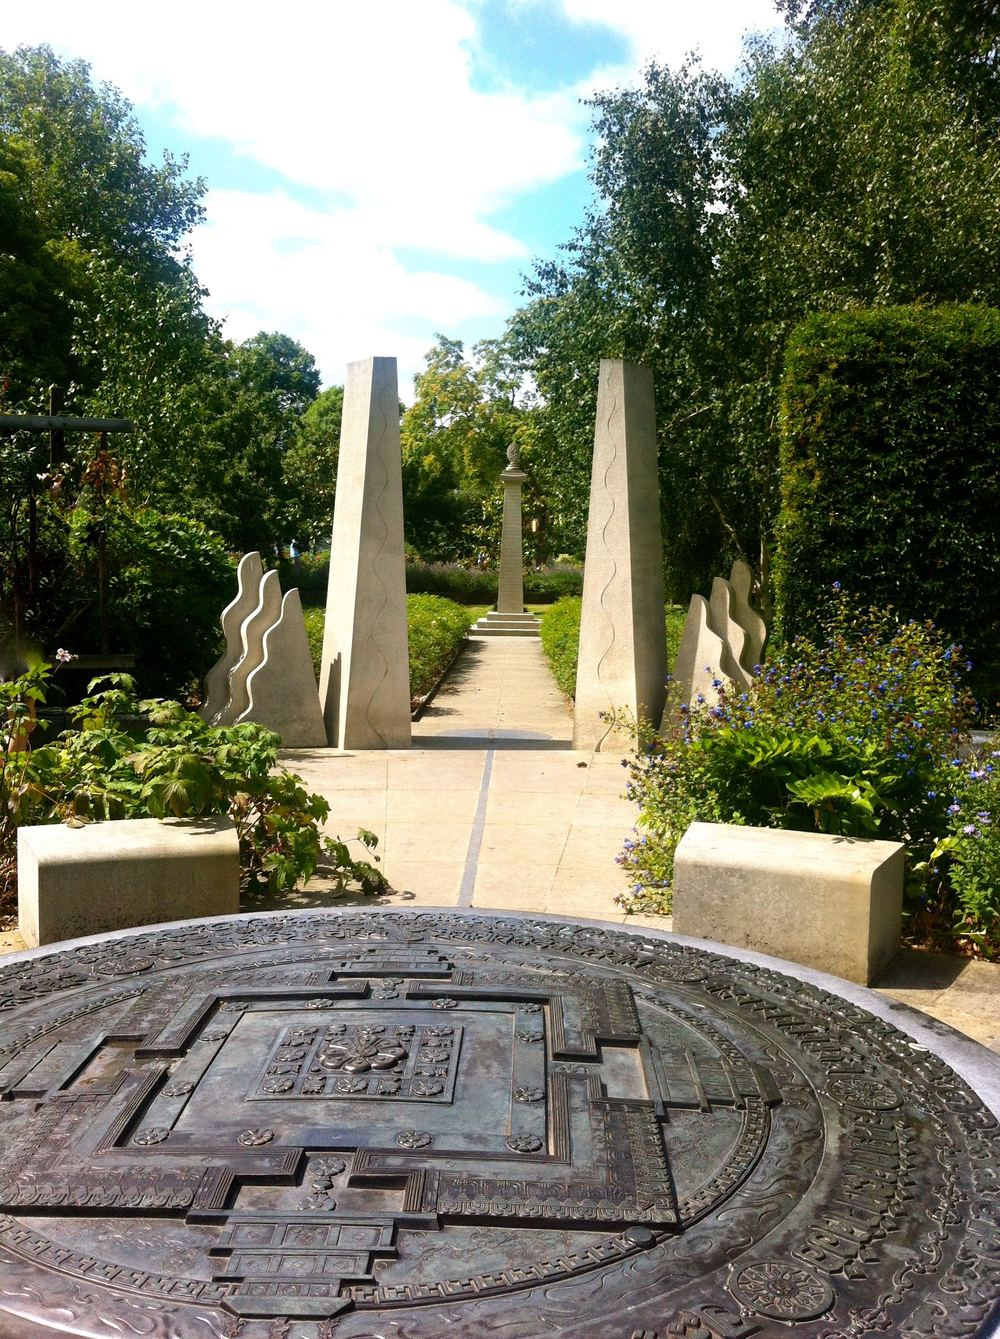 The Tibetan Peace Garden at the Imperial War Museum